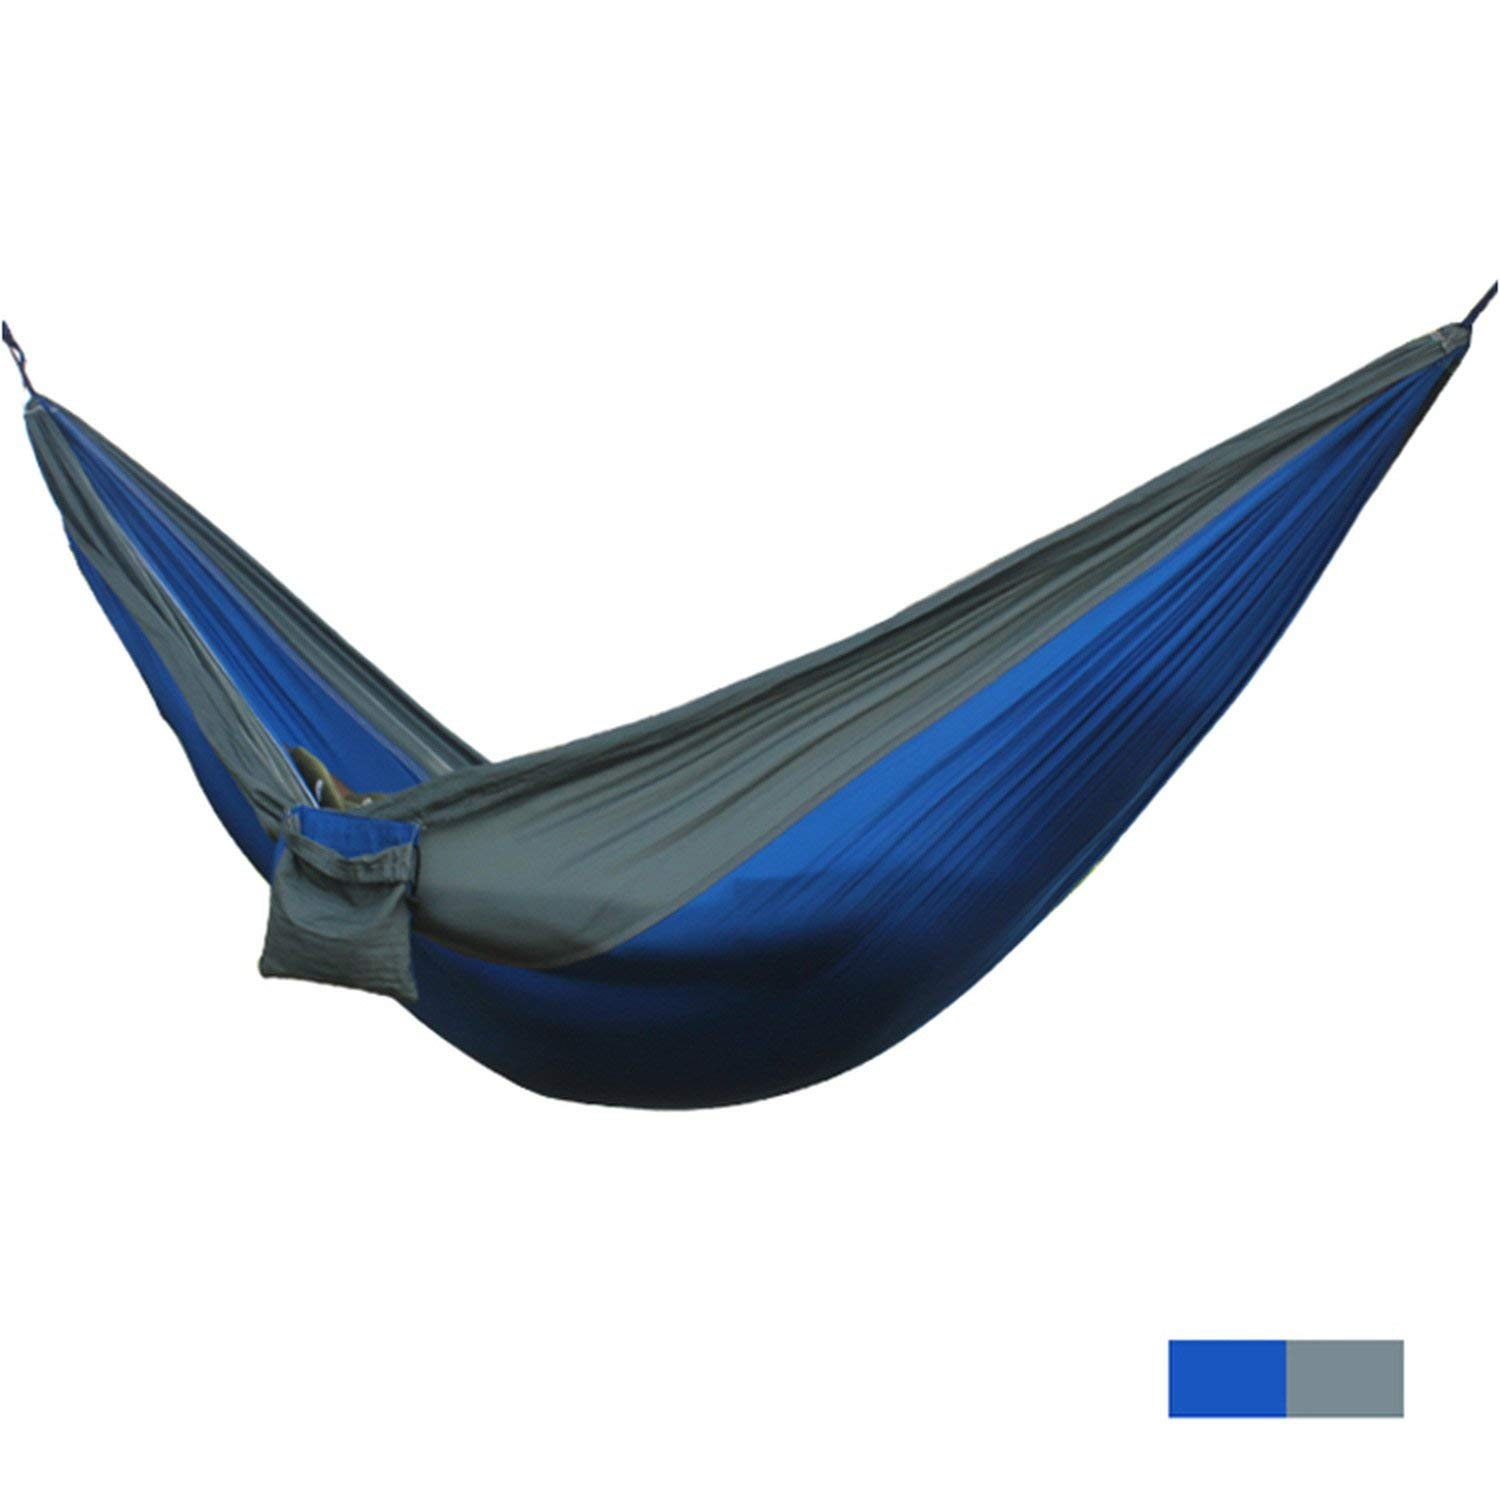 Mandaartins 24 Color 2 People Portable Parachute Hammock Camping Survival Garden Flyknit Hunting Leisure Hamac Travel Double Person Hamak,blue grey